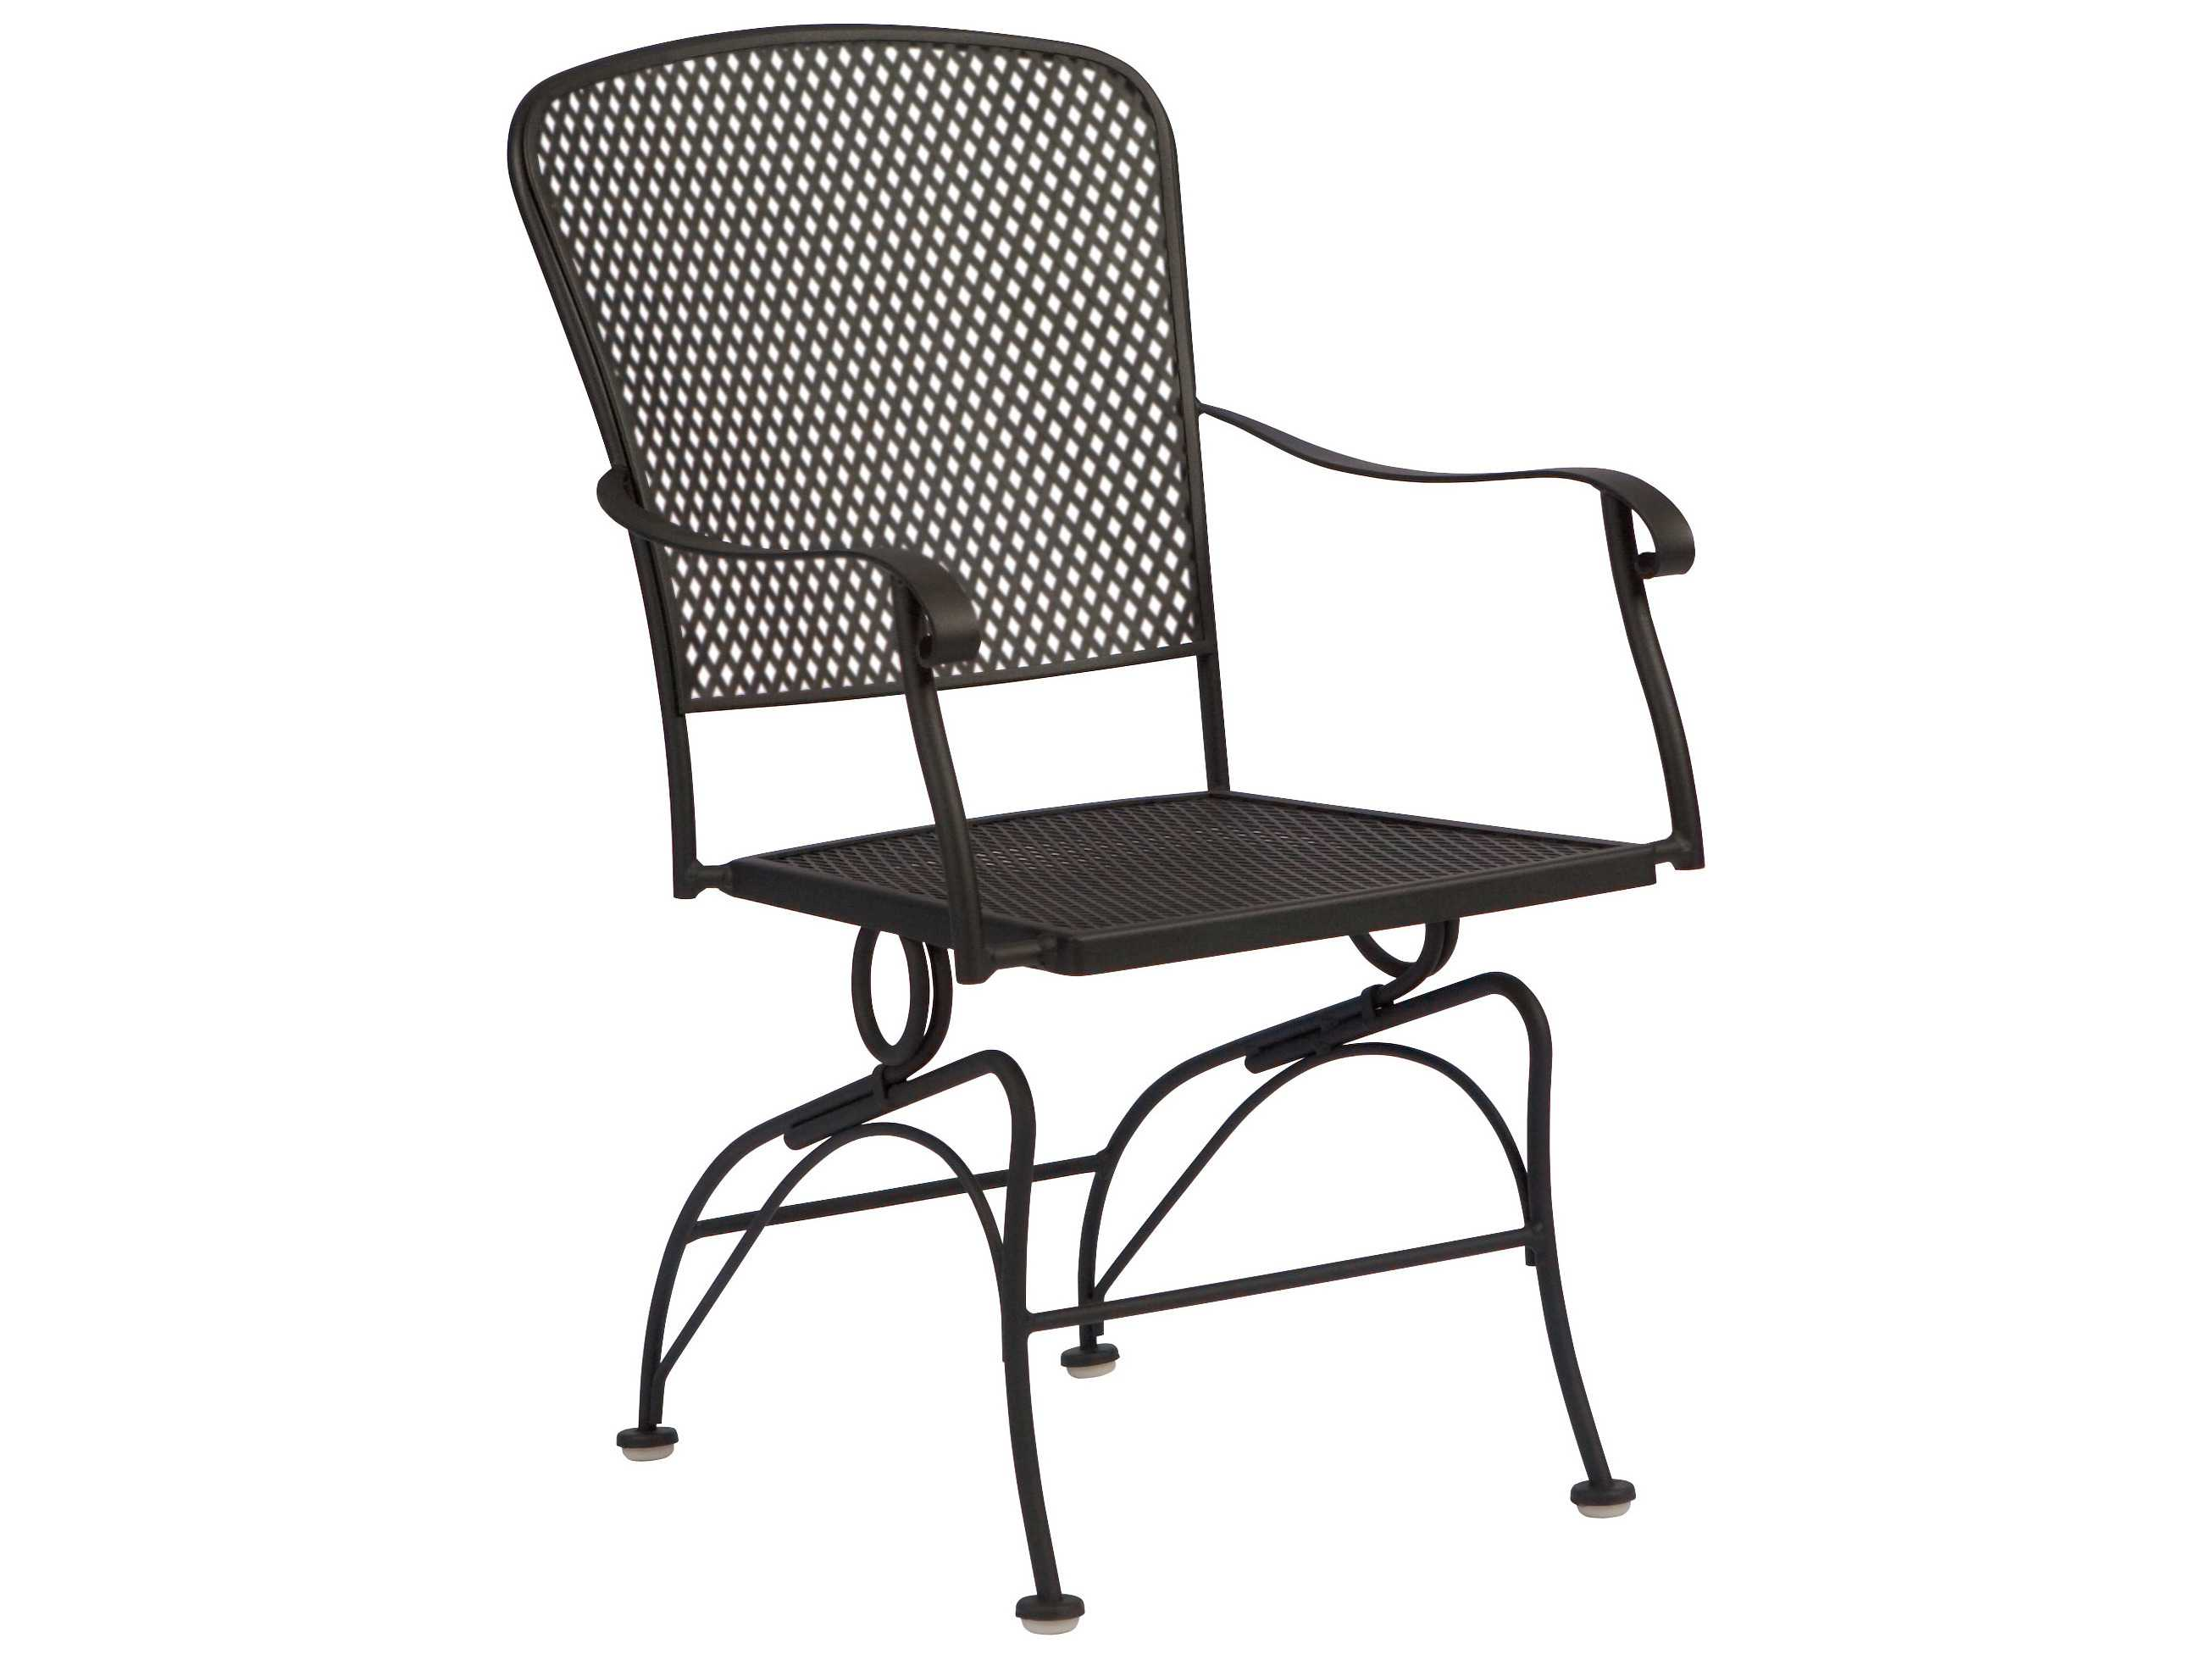 Woodard Fullerton Wrought Iron Coil Spring Dining Chair ...